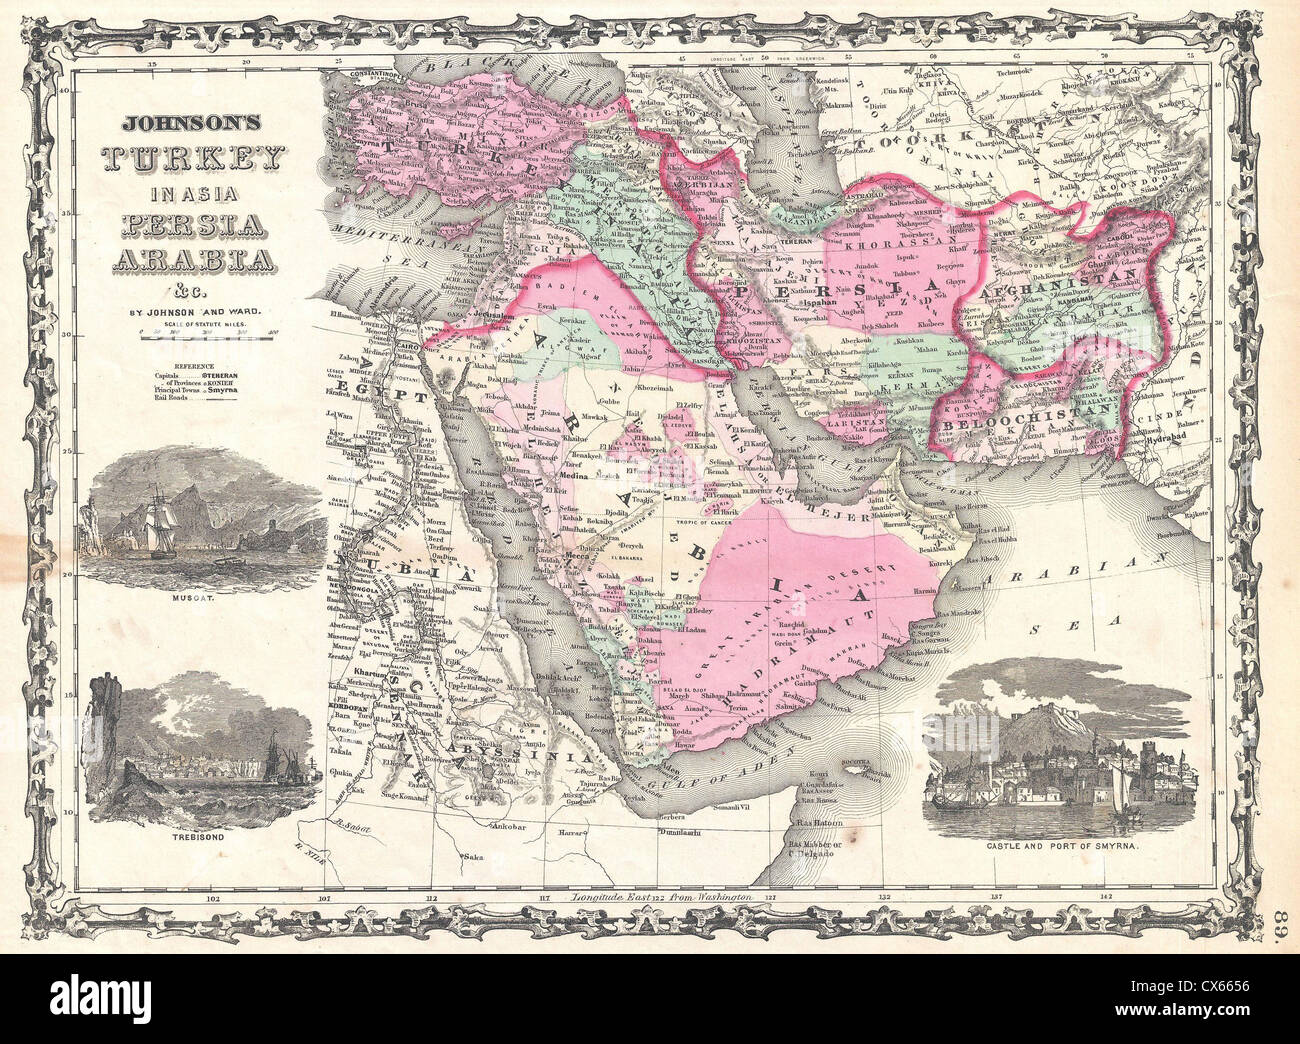 1862 Johnson Map Of Arabia Persia And Turkey In Asia Photo – Map of Arabia